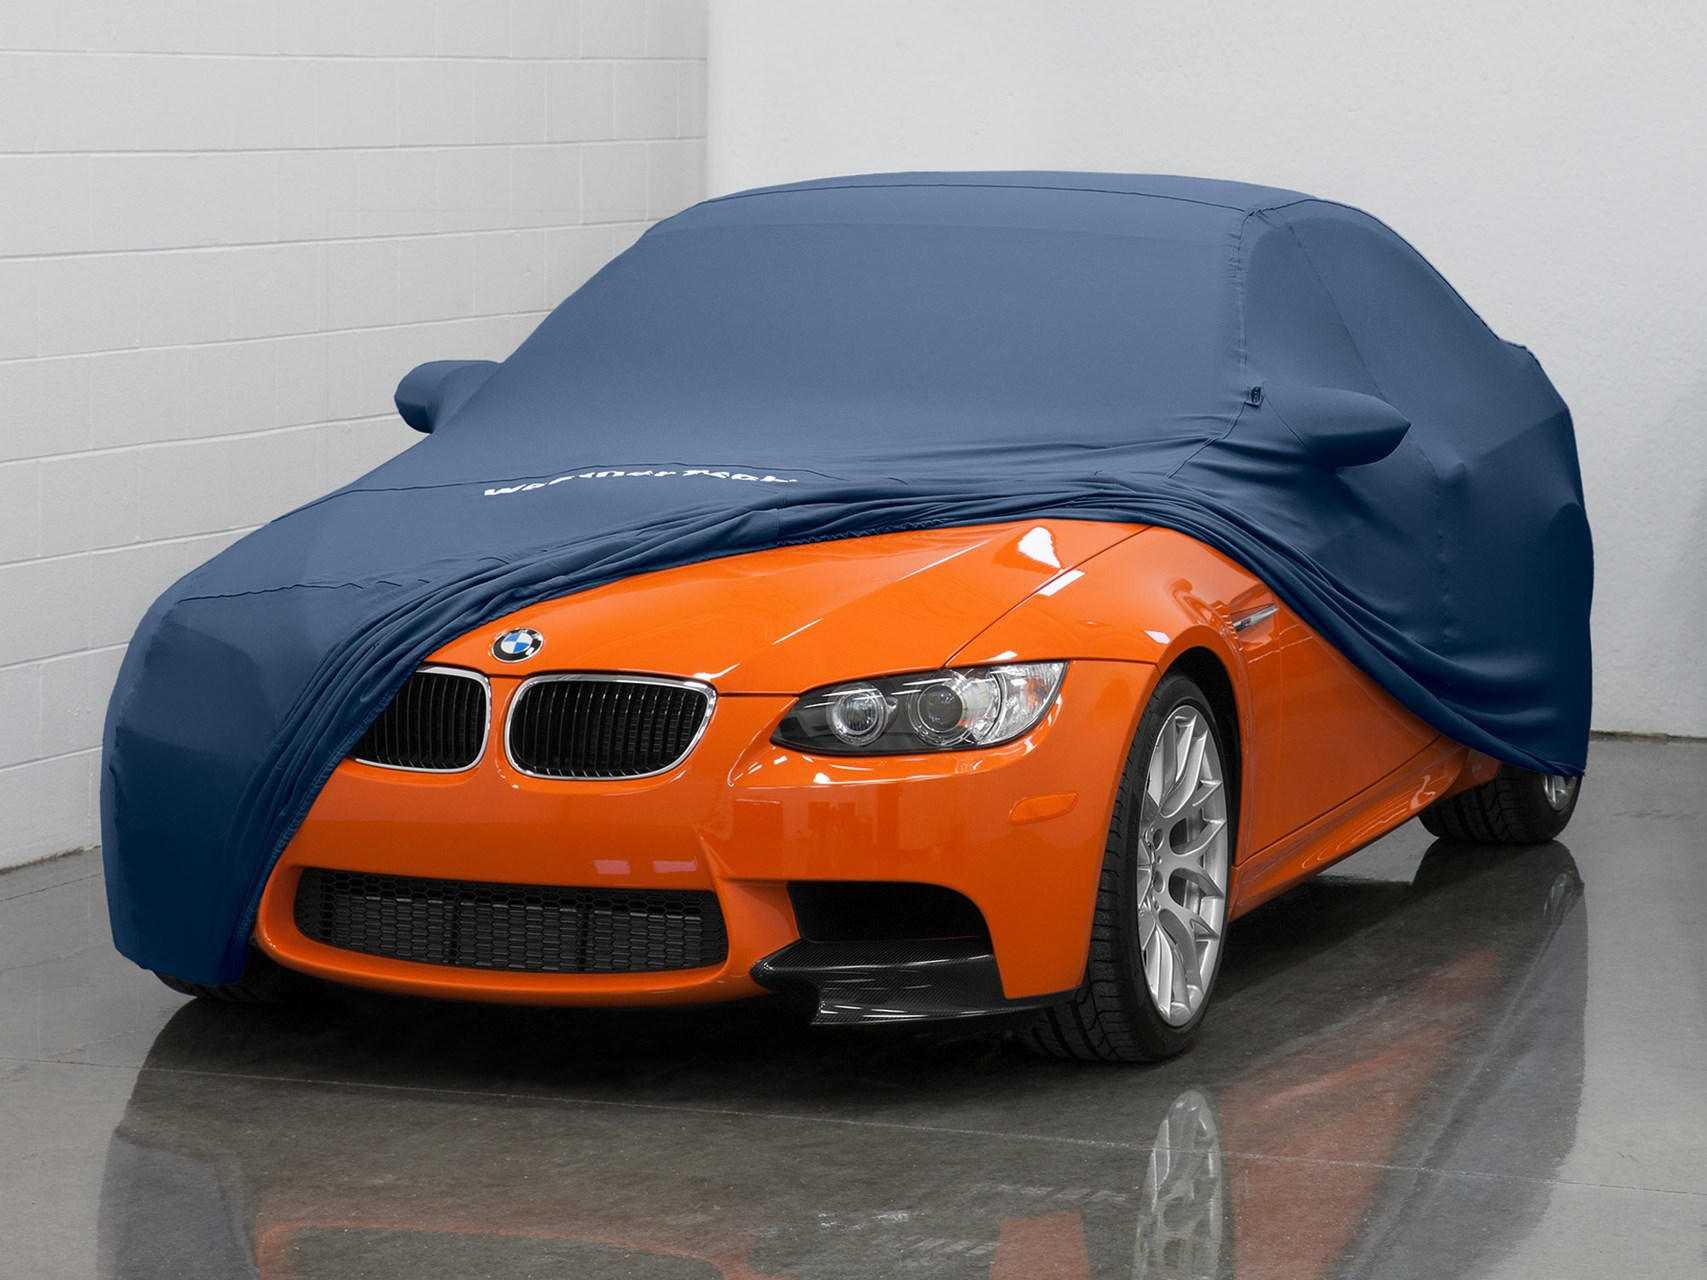 2005 Jaguar XKR | Indoor Car Covers - Form-Fit | WeatherTech